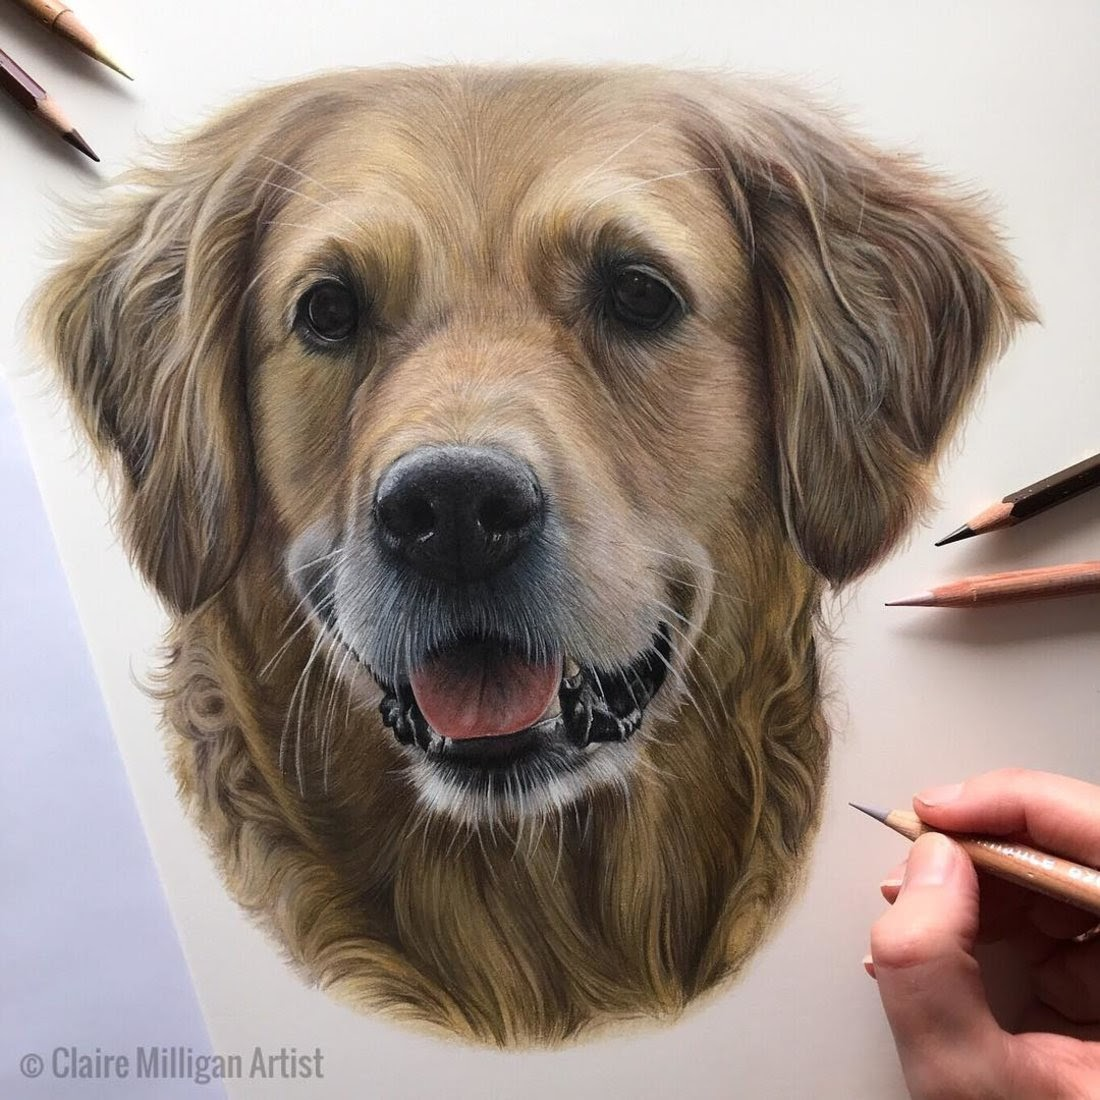 05-Golden-Retriever-Claire-Milligan-Pet-Portraits-and-Wildlife-Art-www-designstack-co